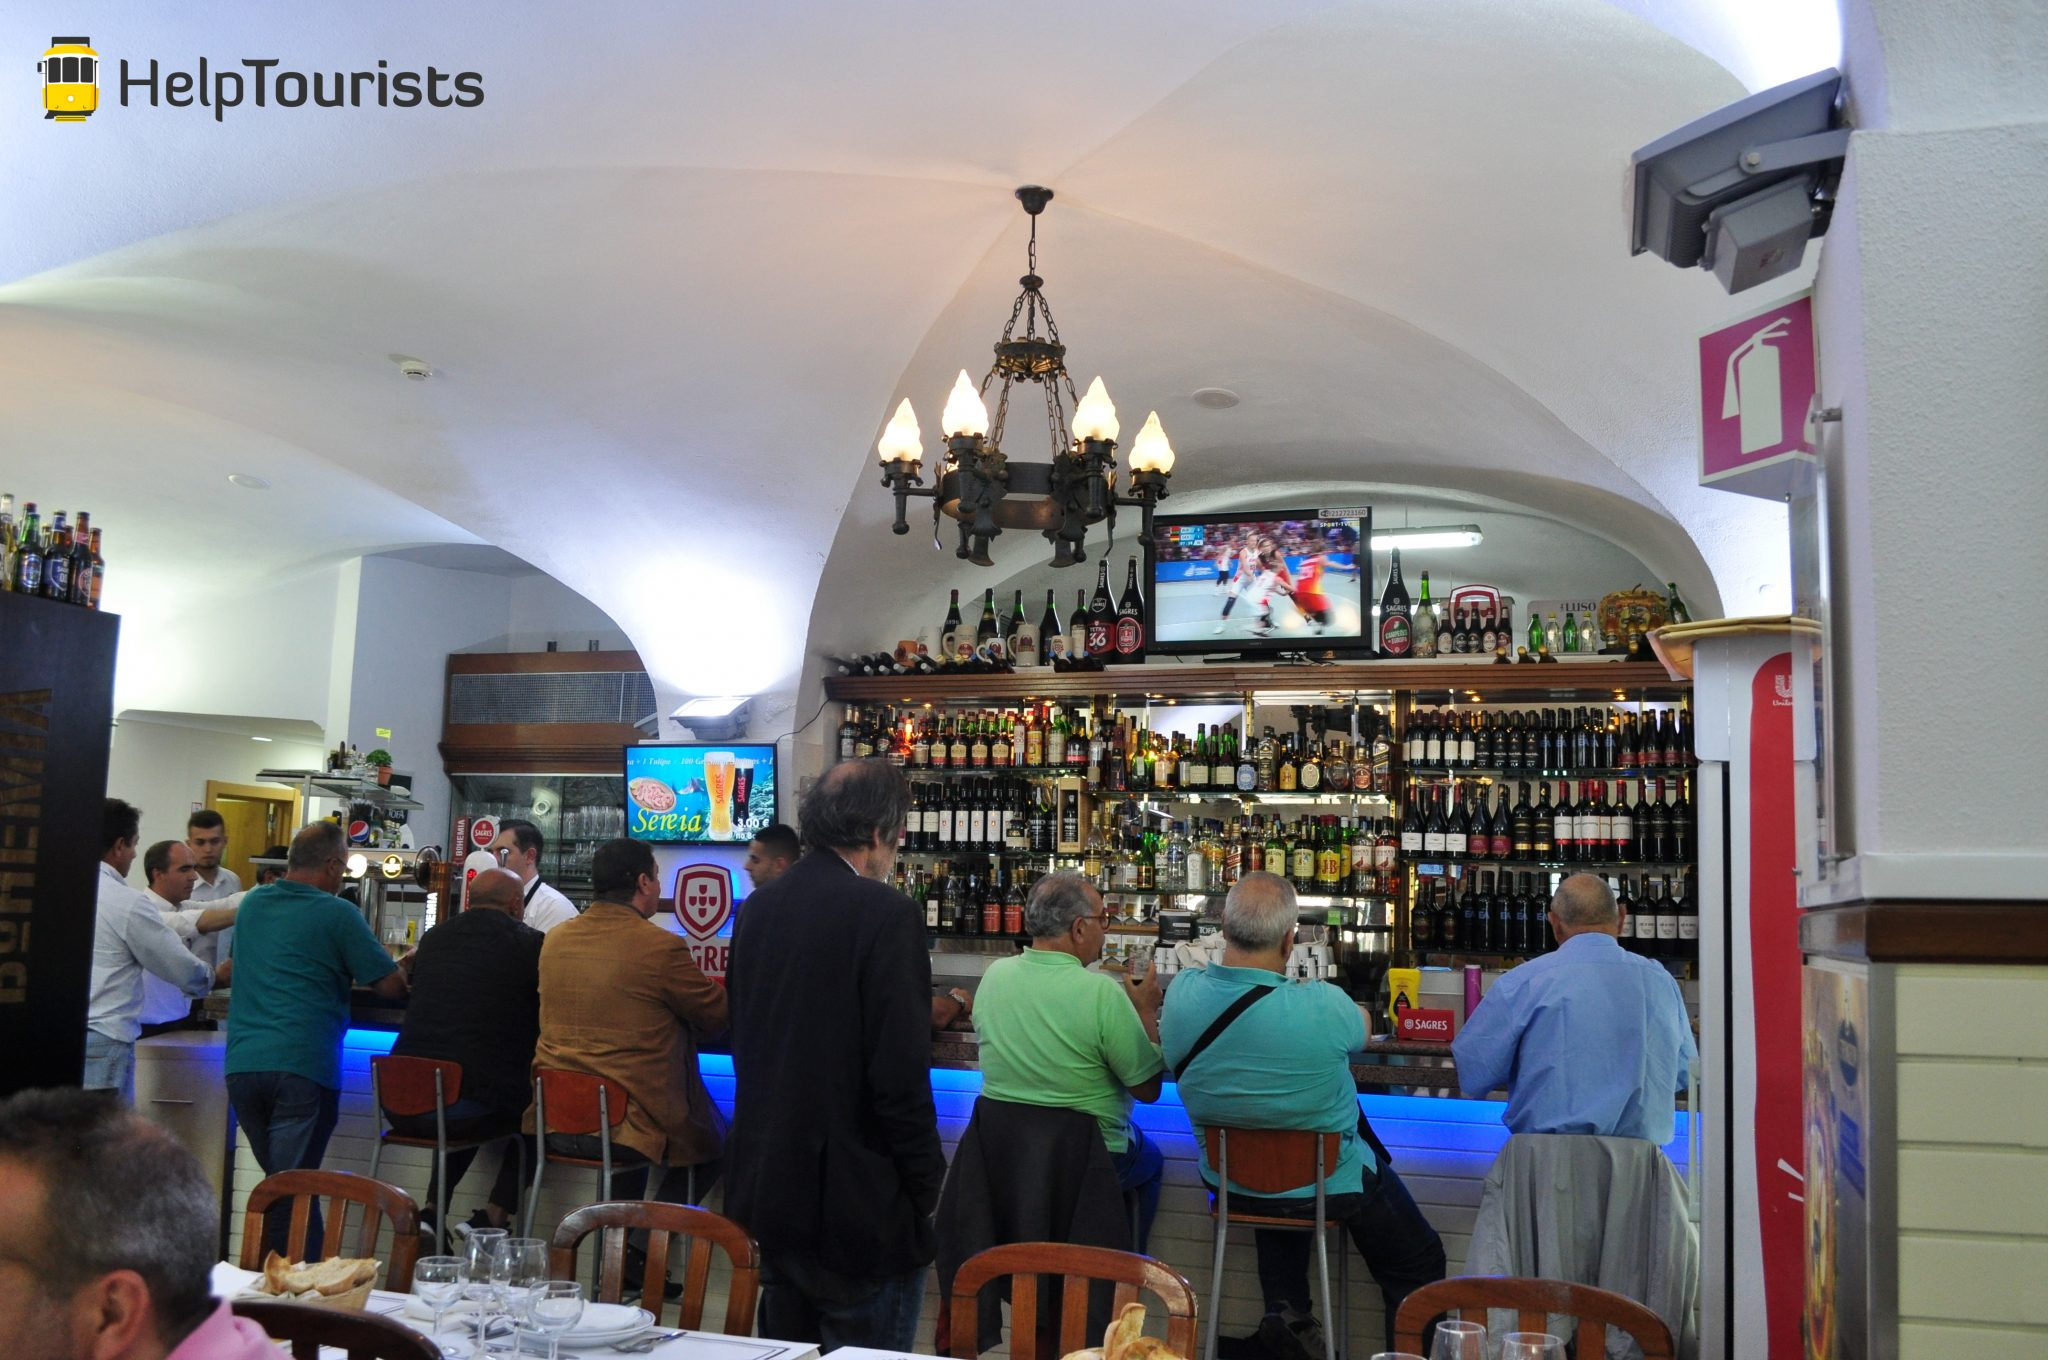 Lissabon traditionelles Restaurant Wein